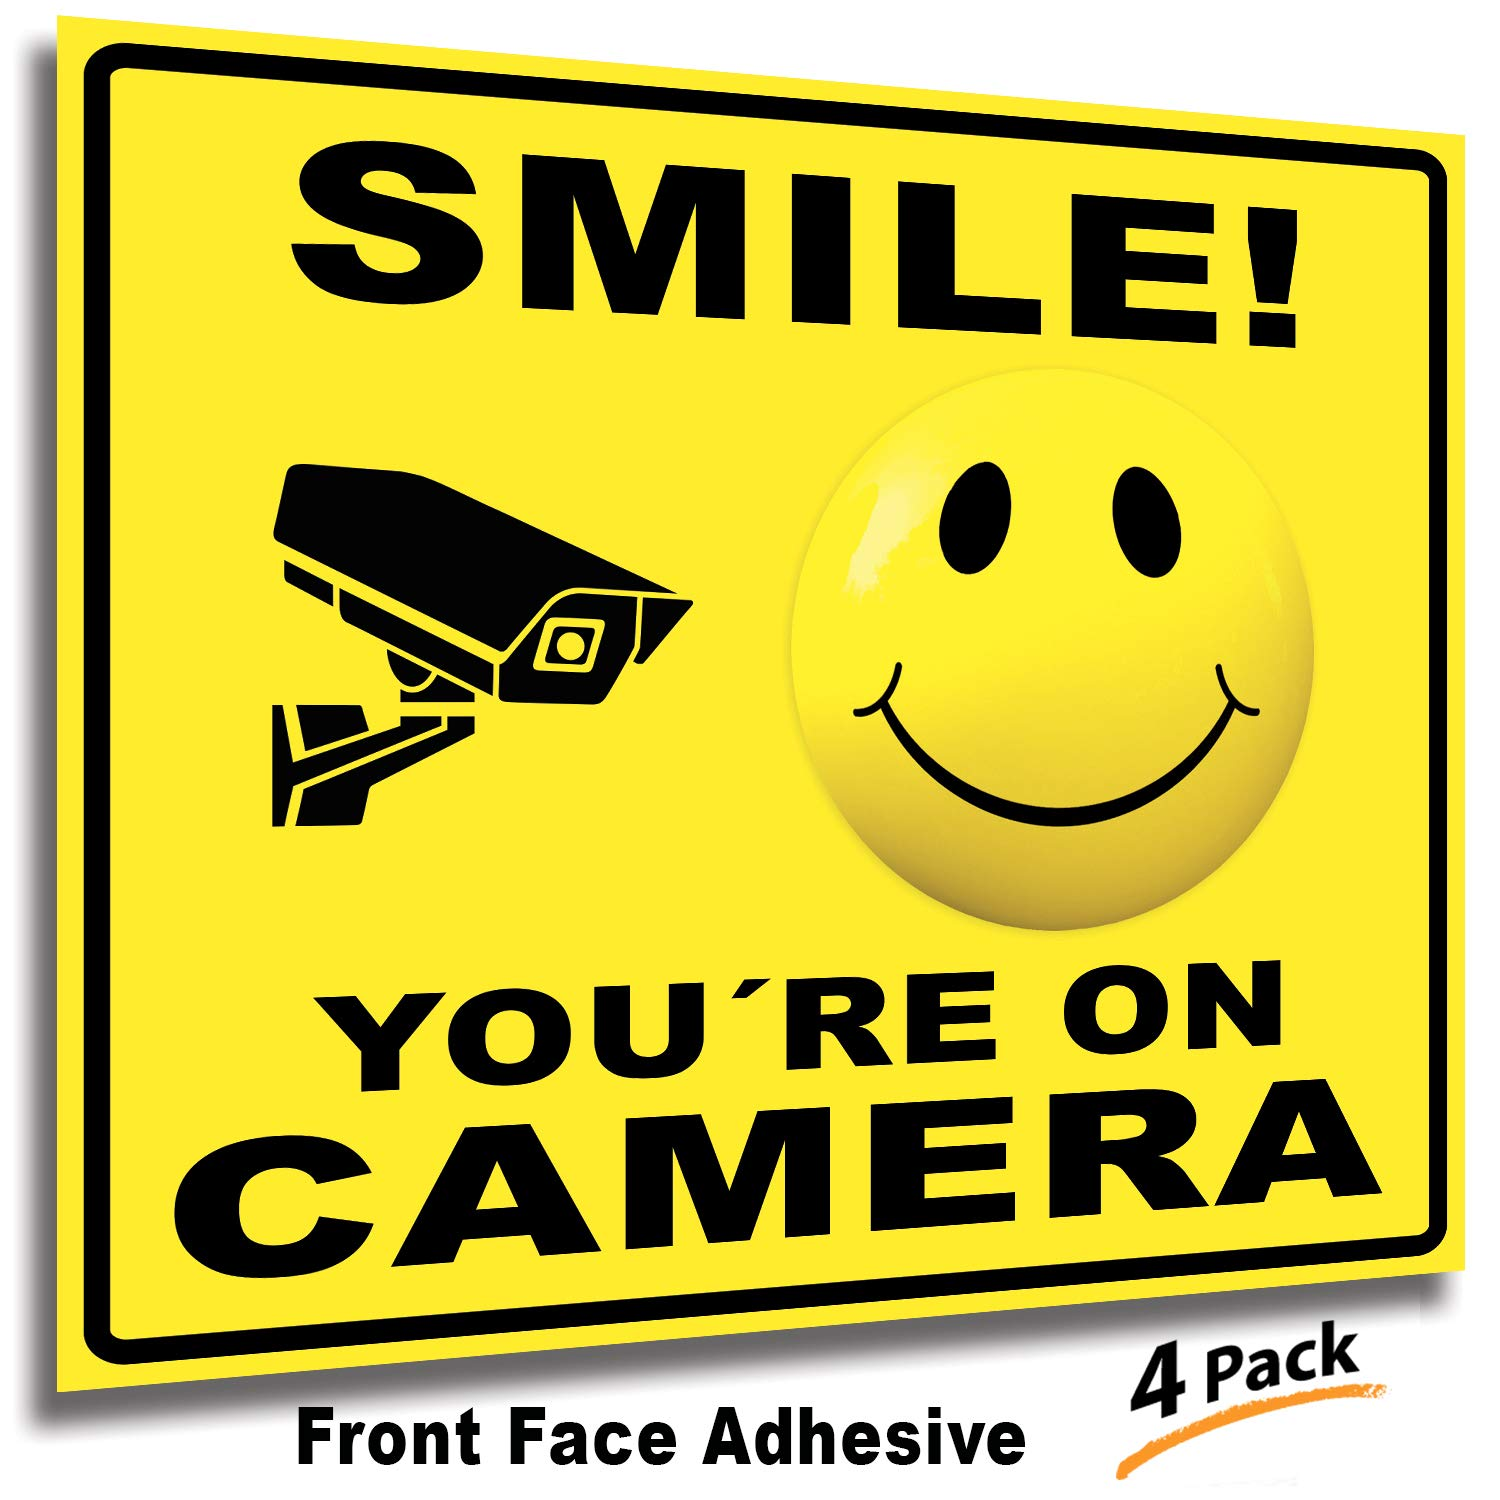 Smile Youre On Camera Signs Stickers Weather Decal Indoor /& Outdoor Water and Fade Resistance 4 Pack Reflective Silver 7x6 Inch Premium Self-Adhesive Vinyl Scratch Laminated for Ultimate UV